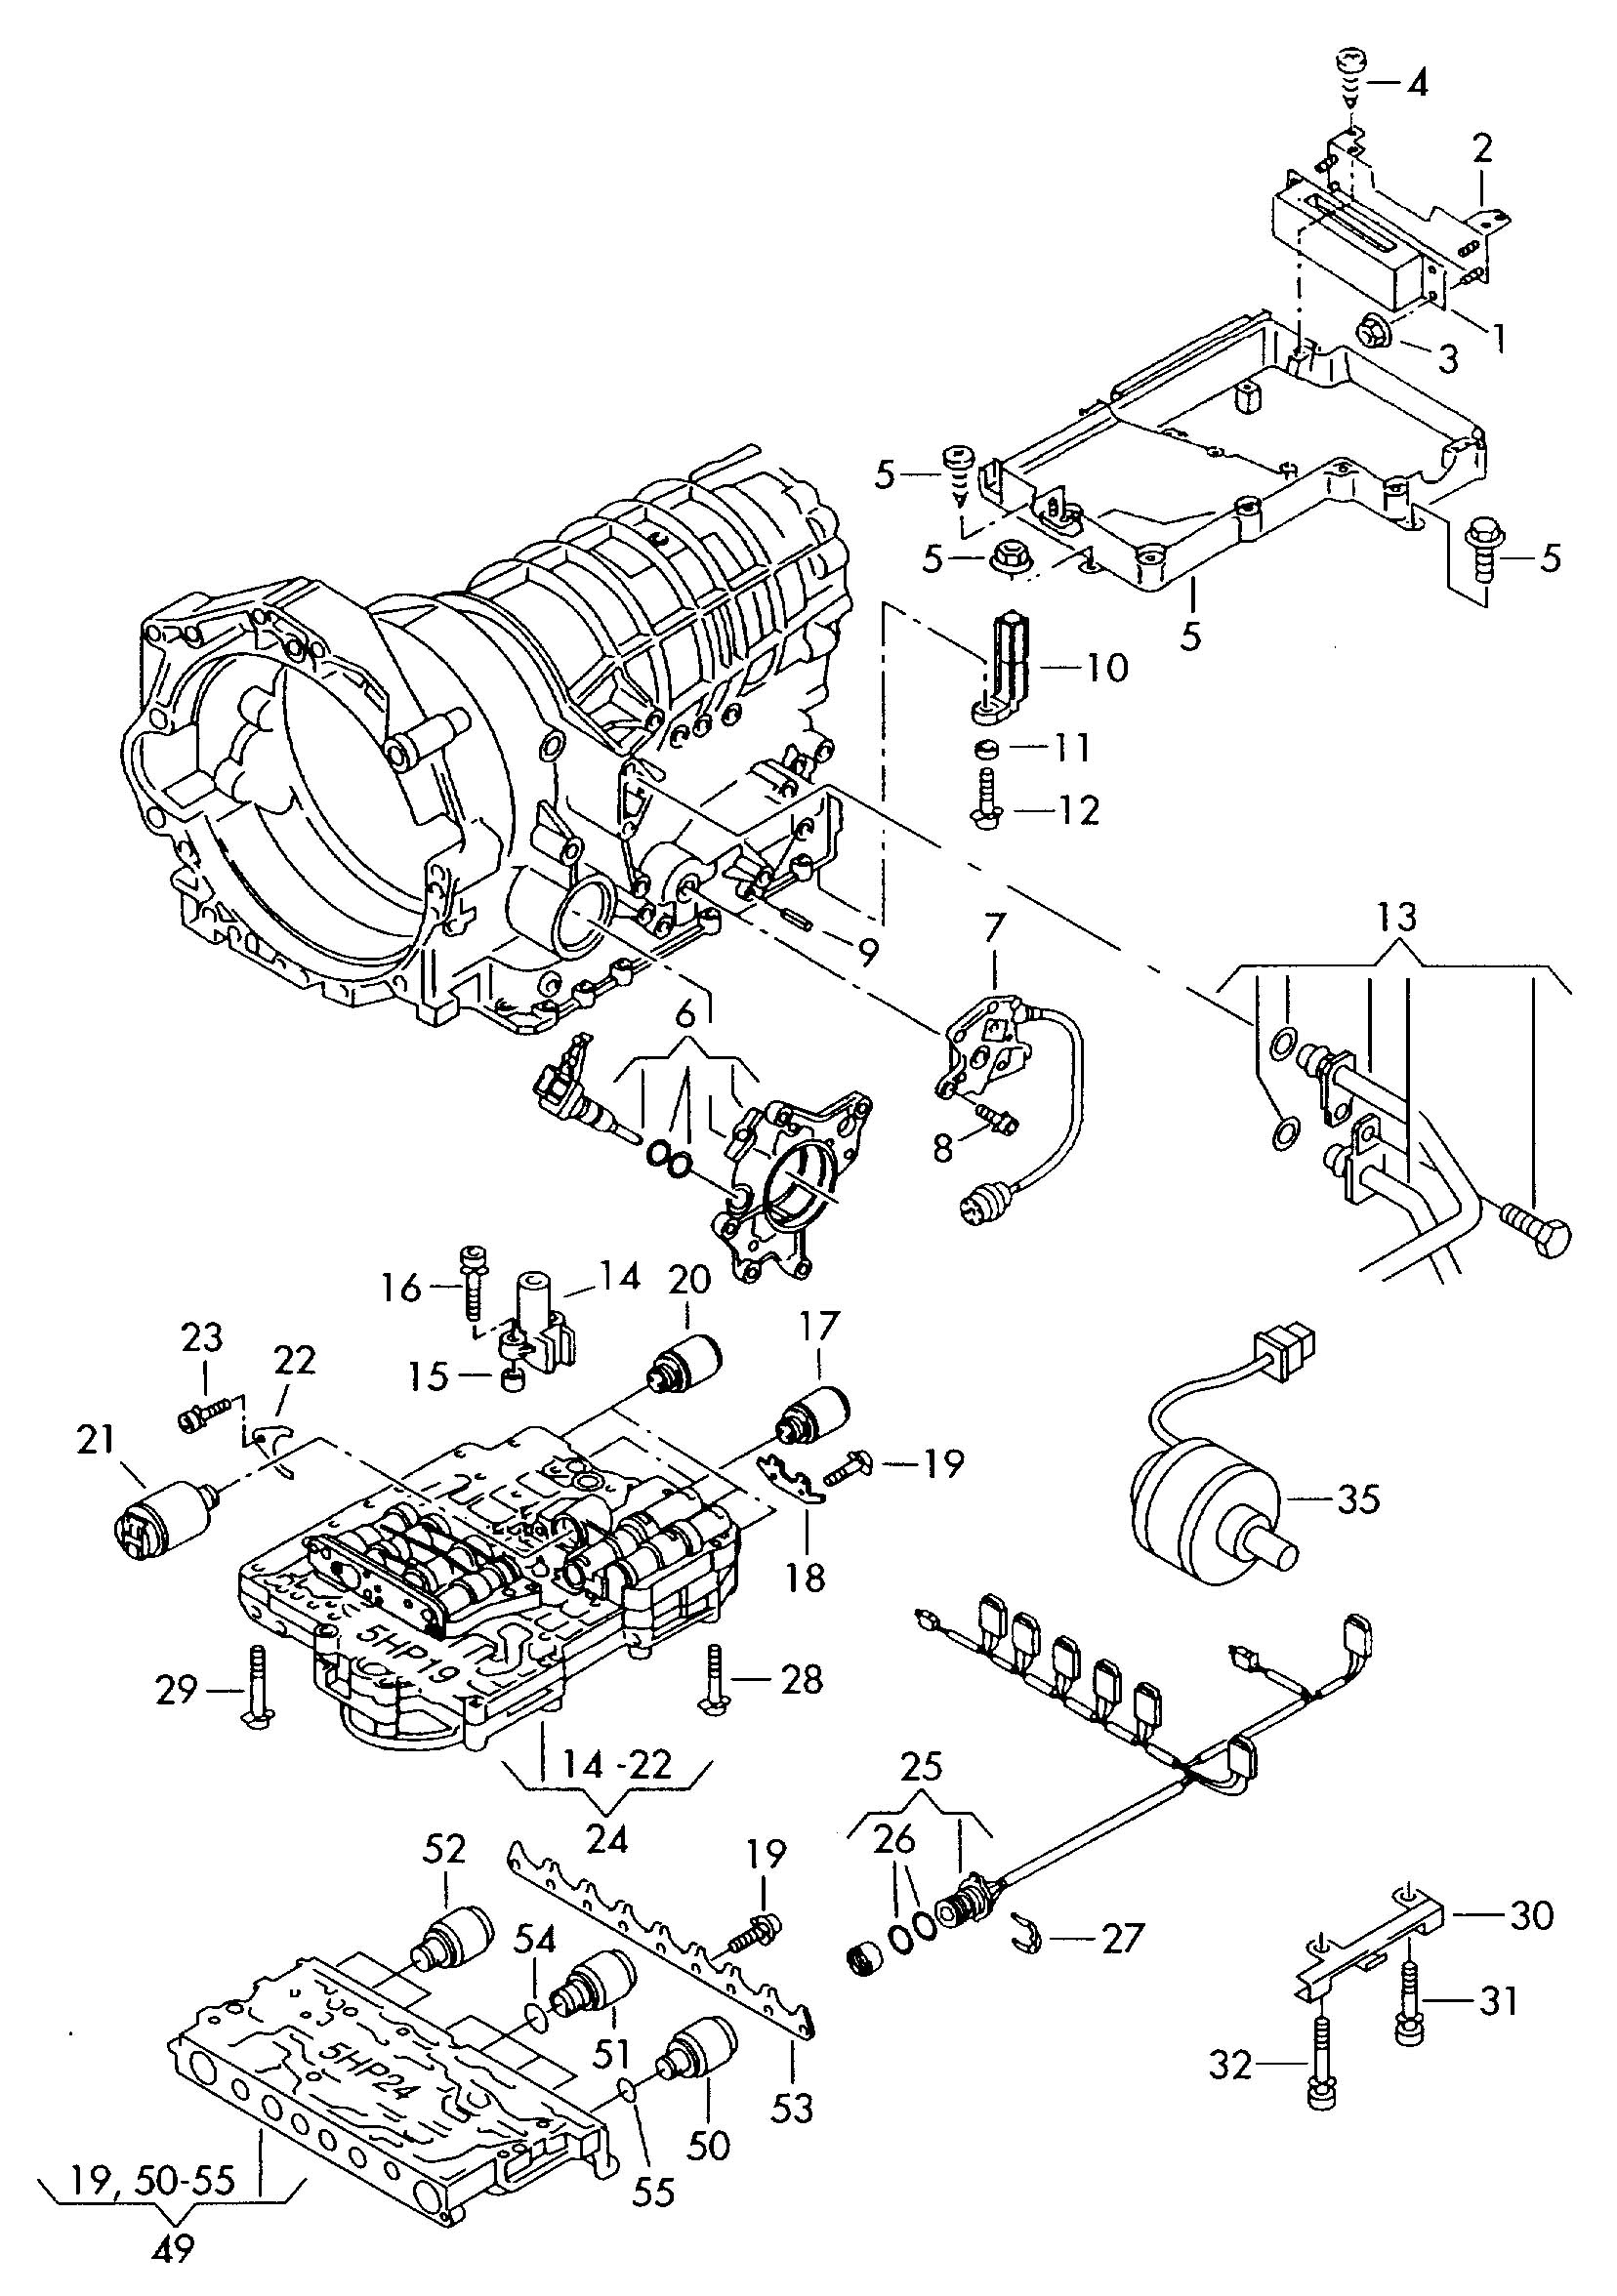 Diagram Volkswagen Tiguan Engine Diagram Full